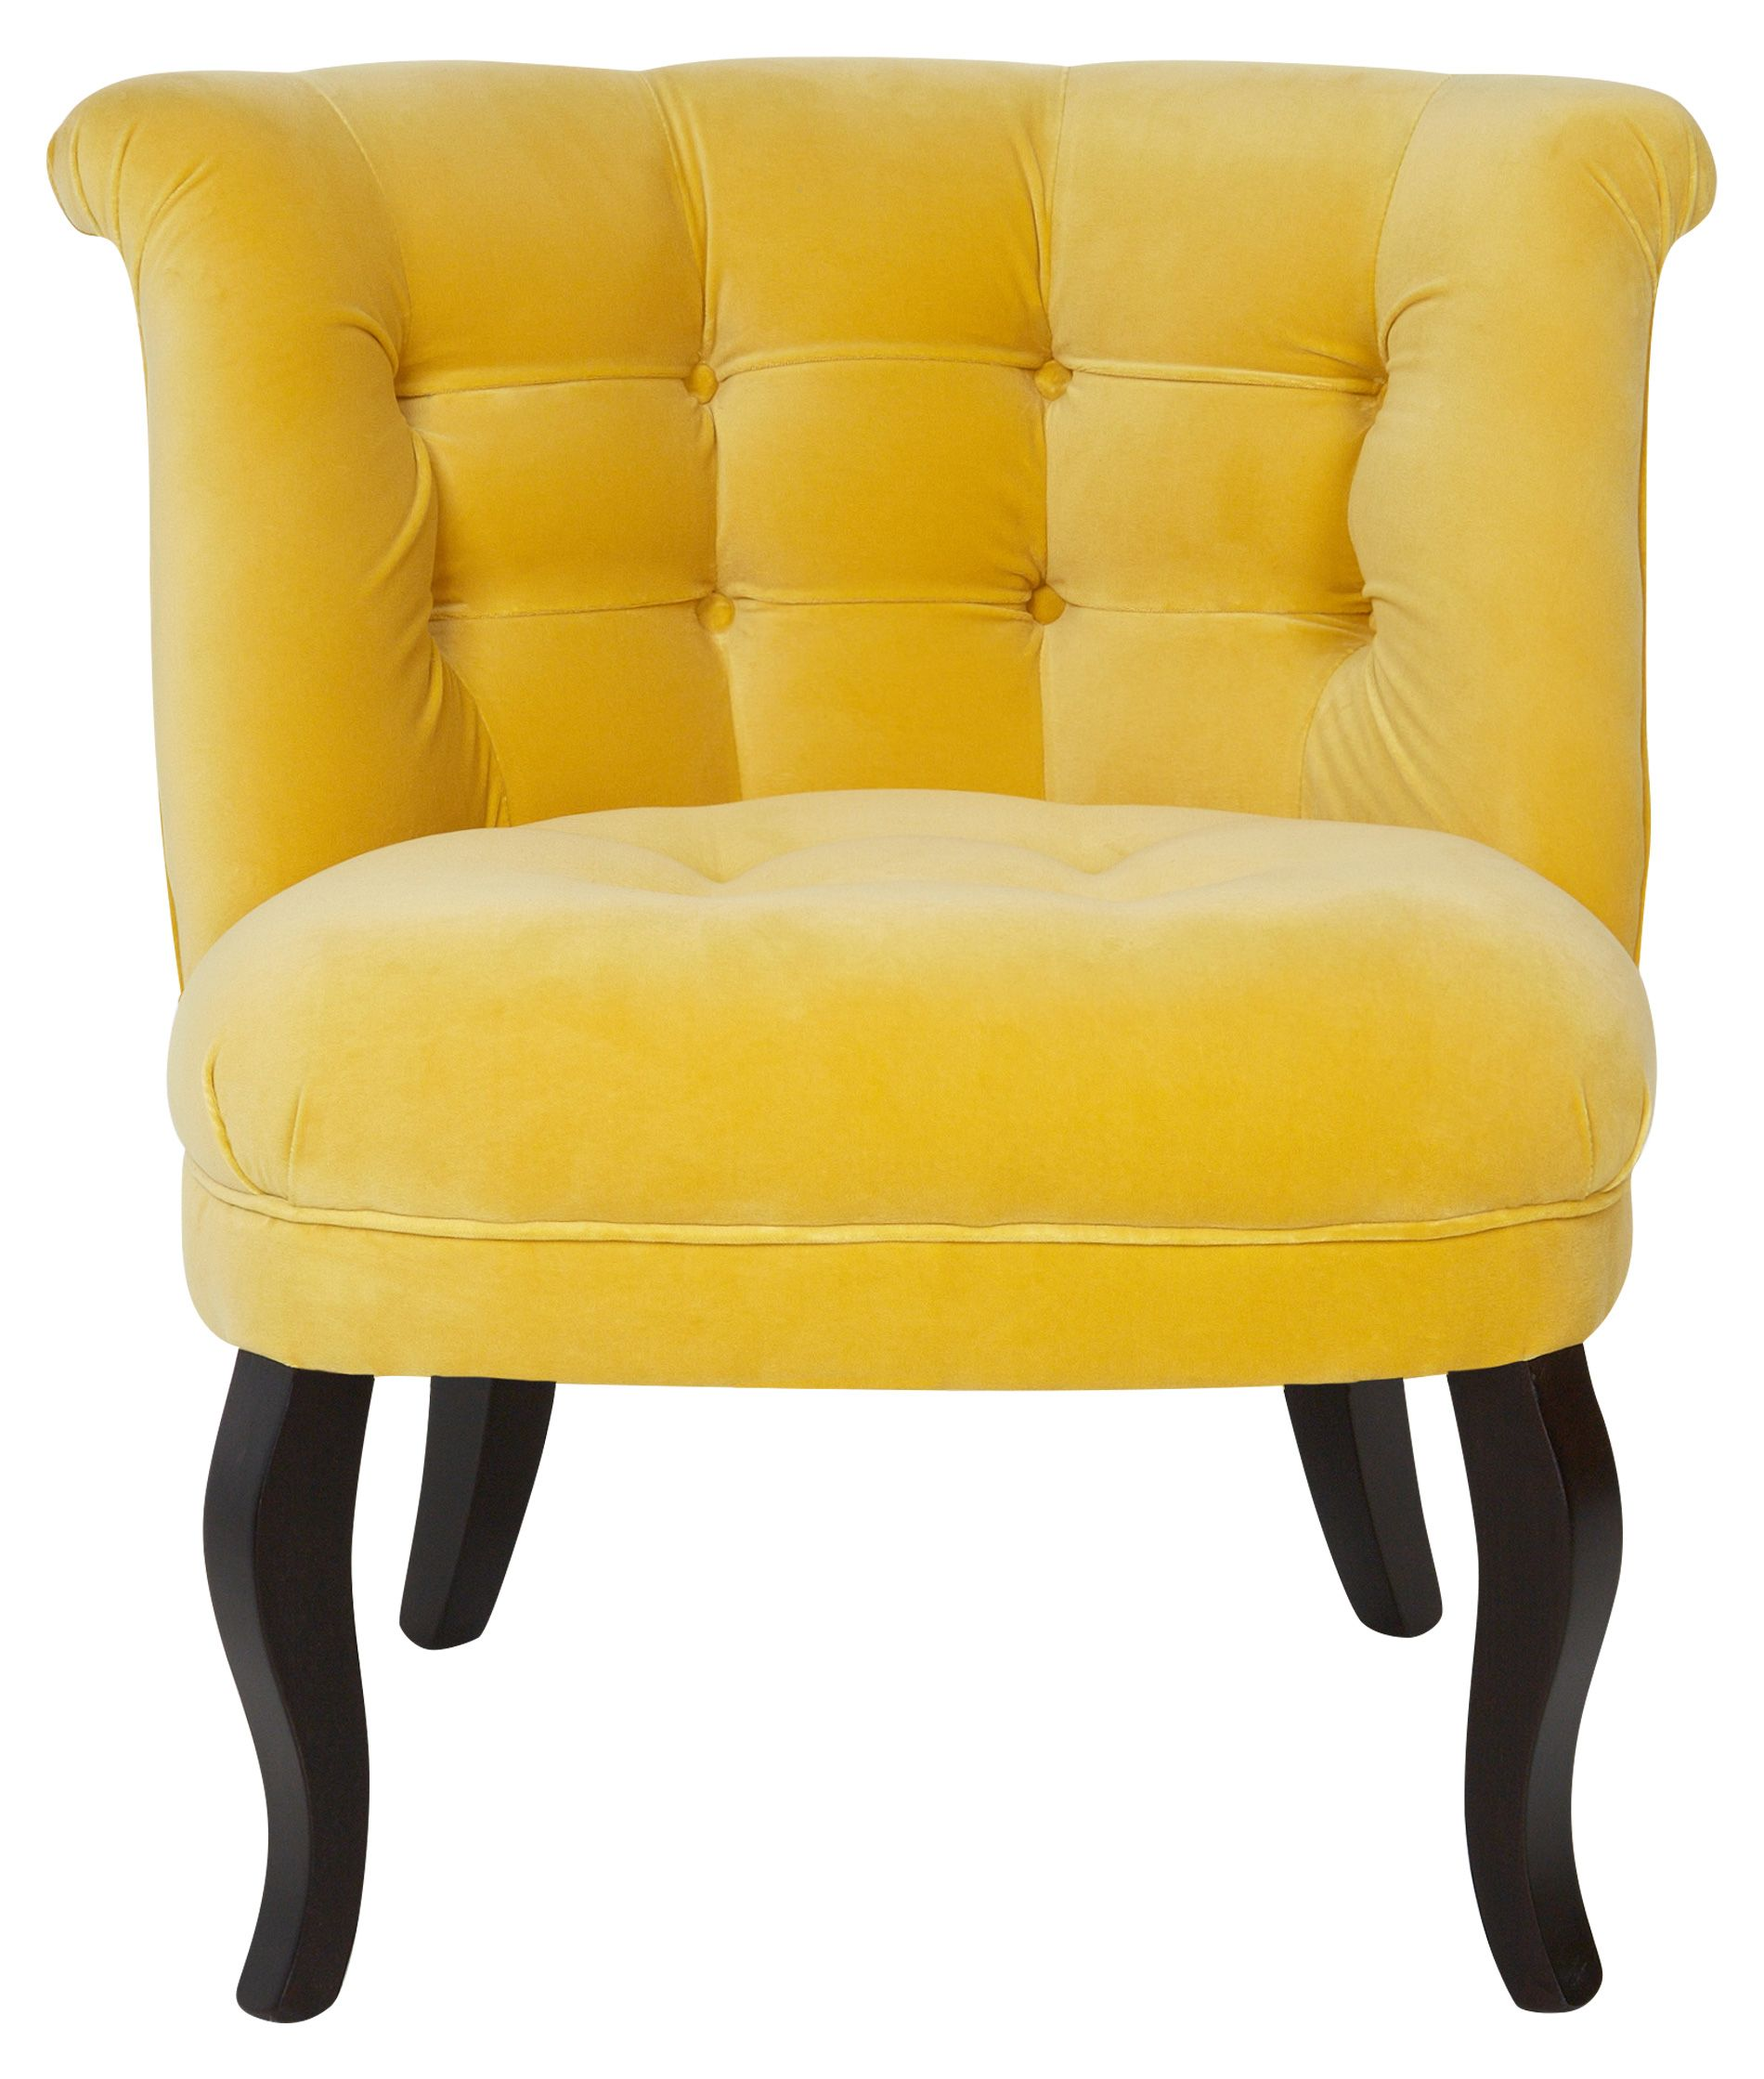 Pin By Rellativity On Living Room Pinterest Tub Chair Chair And